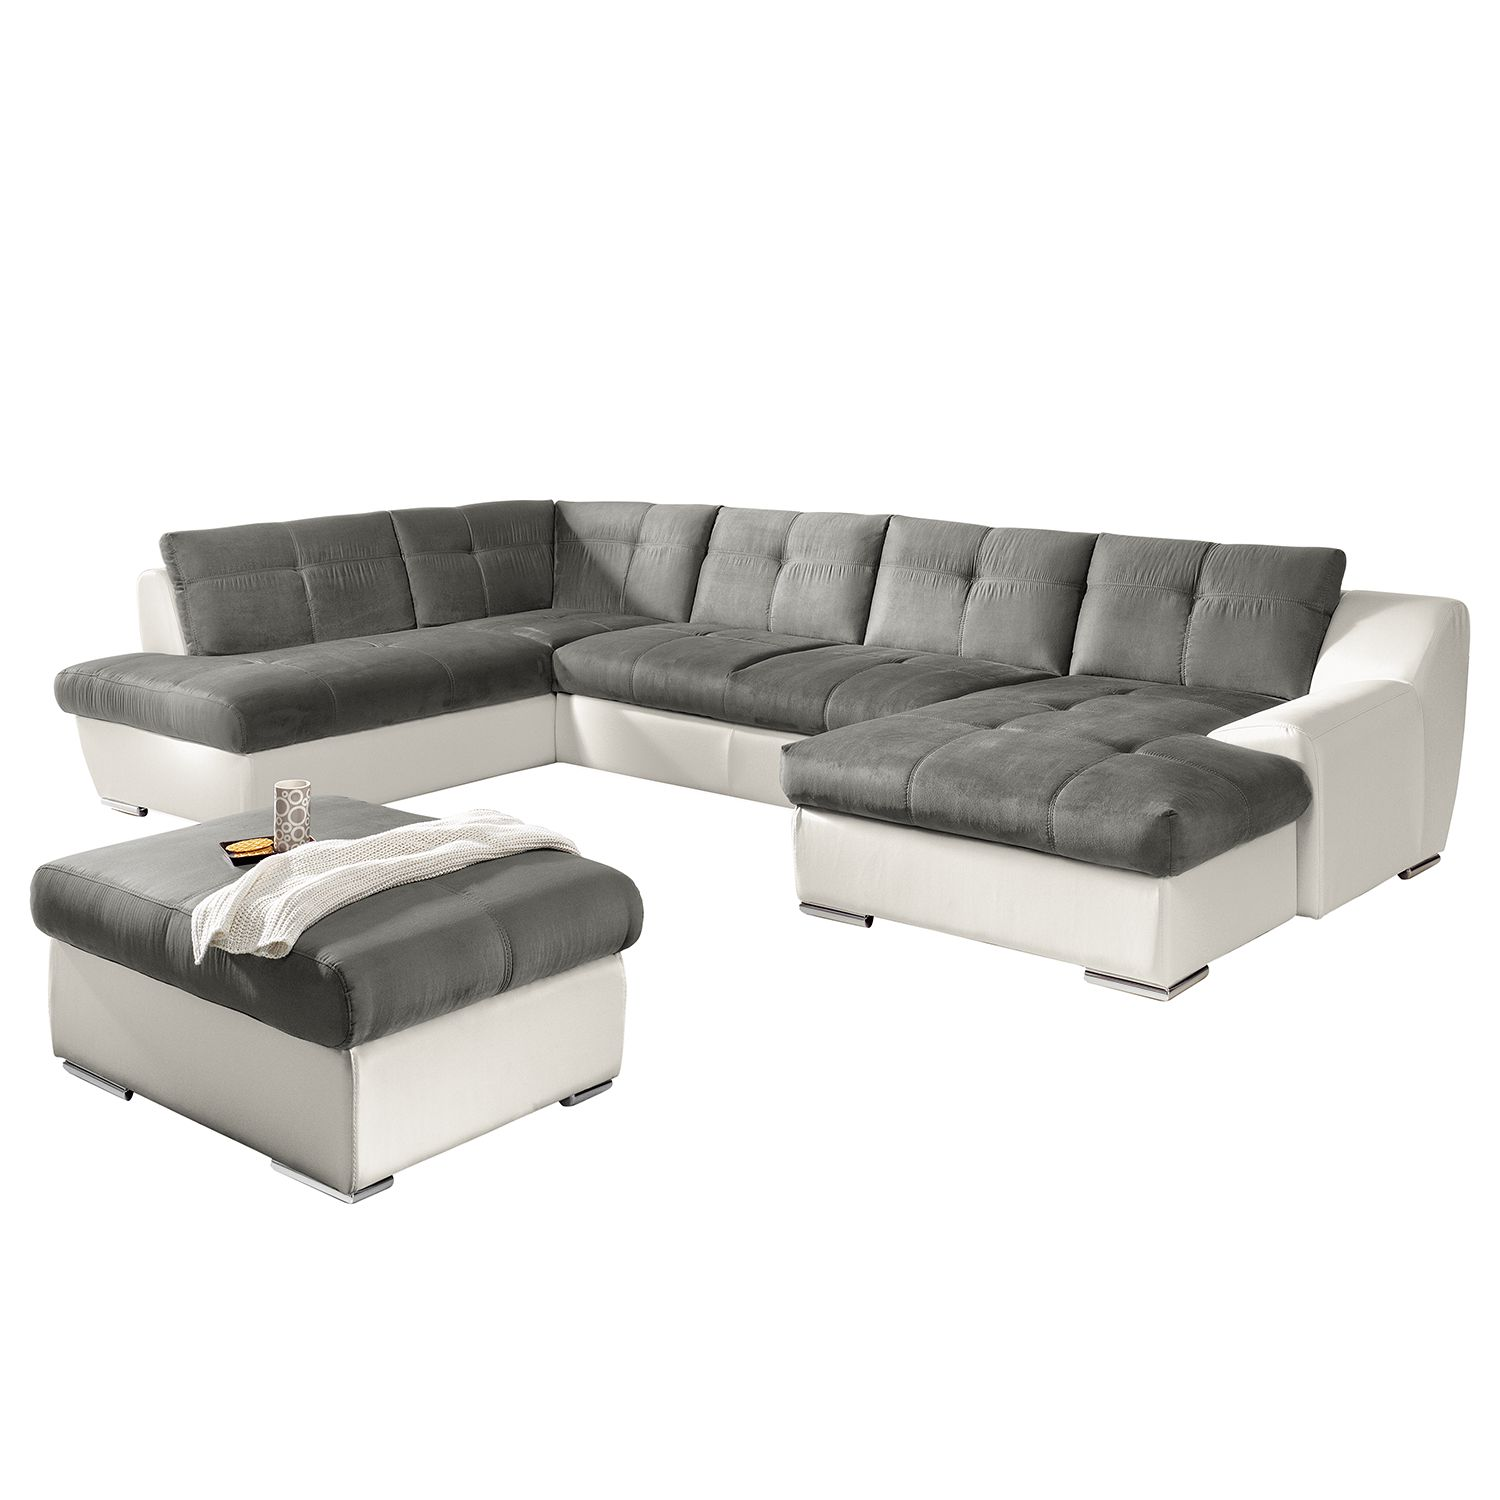 sofa mit ottomane das beste aus wohndesign und m bel. Black Bedroom Furniture Sets. Home Design Ideas